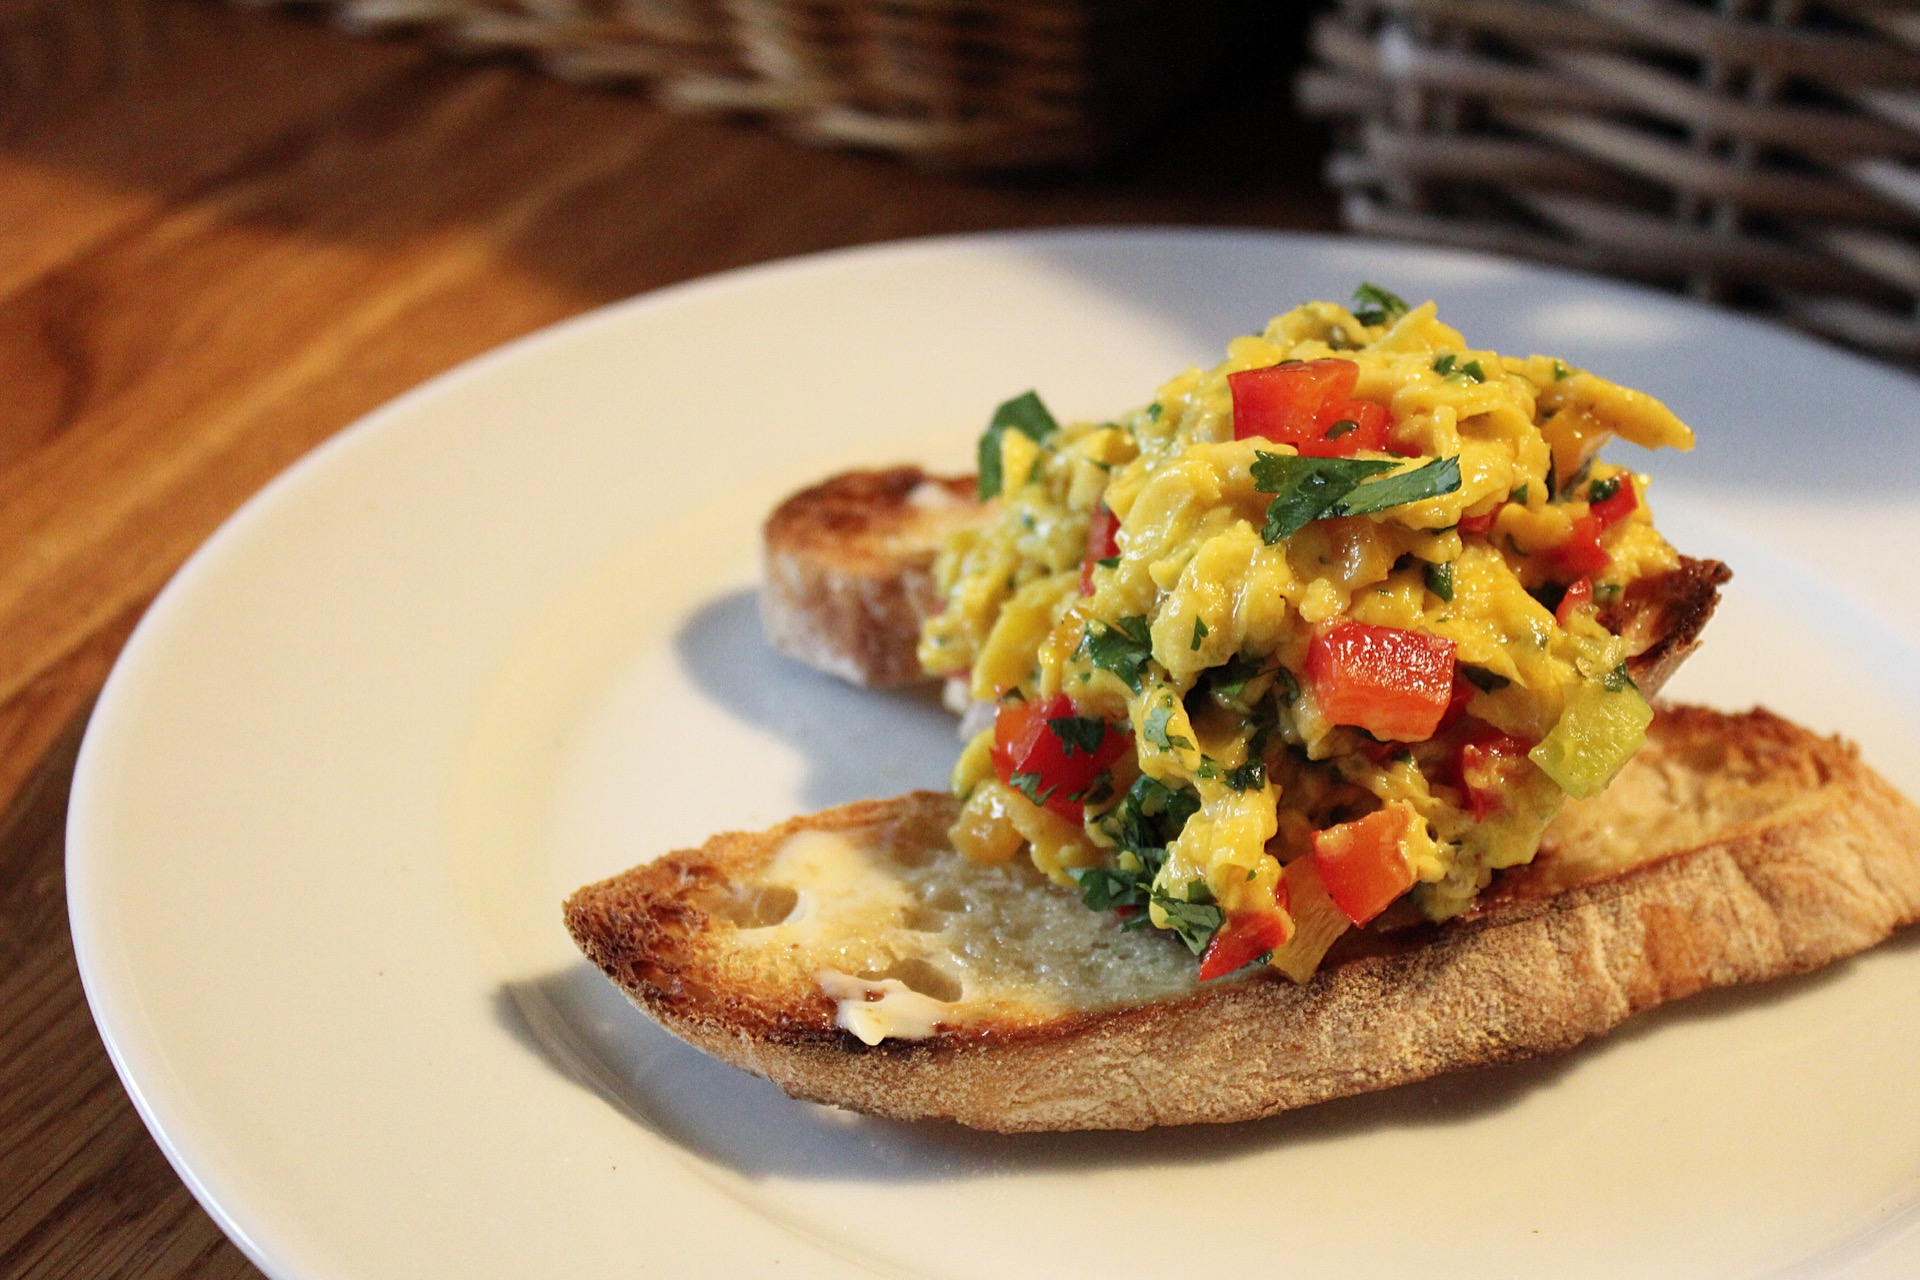 Chilli scrambled eggs